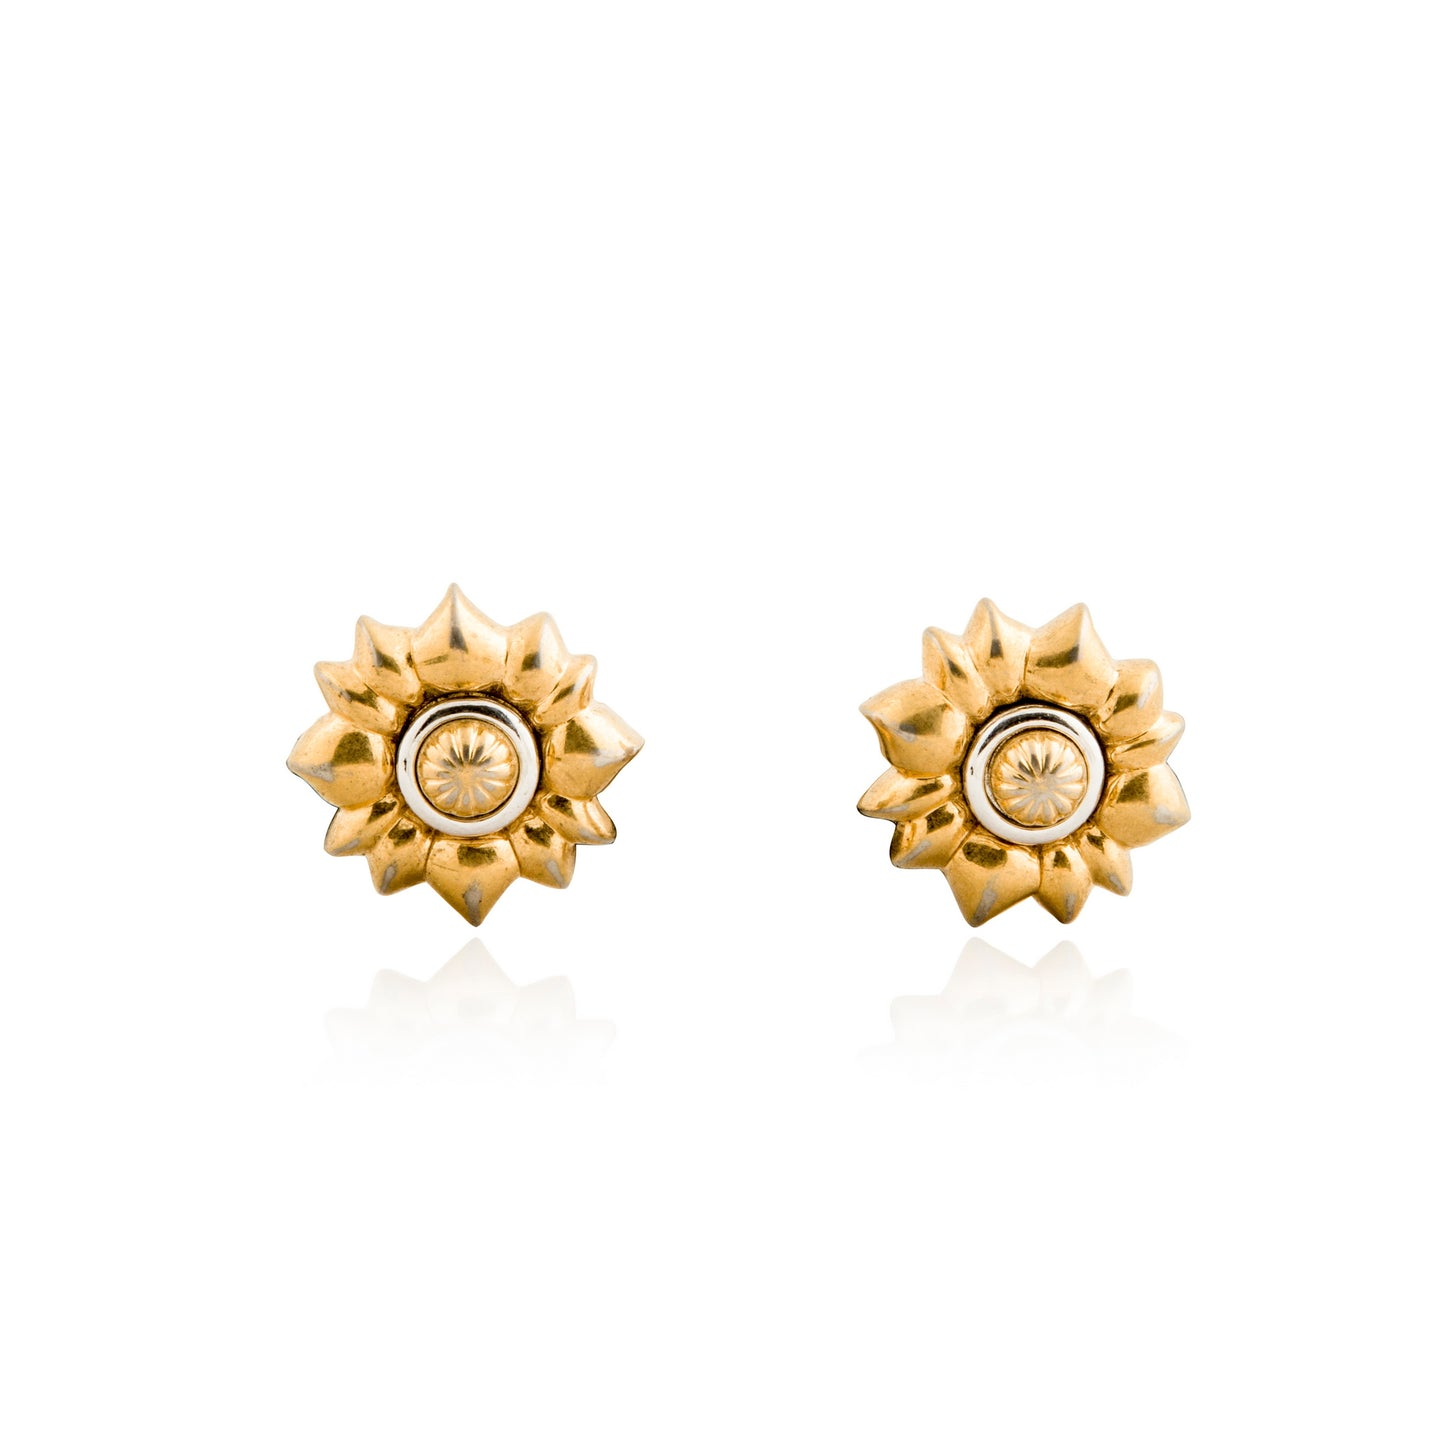 Vintage Nina Ricci Flower Earrings